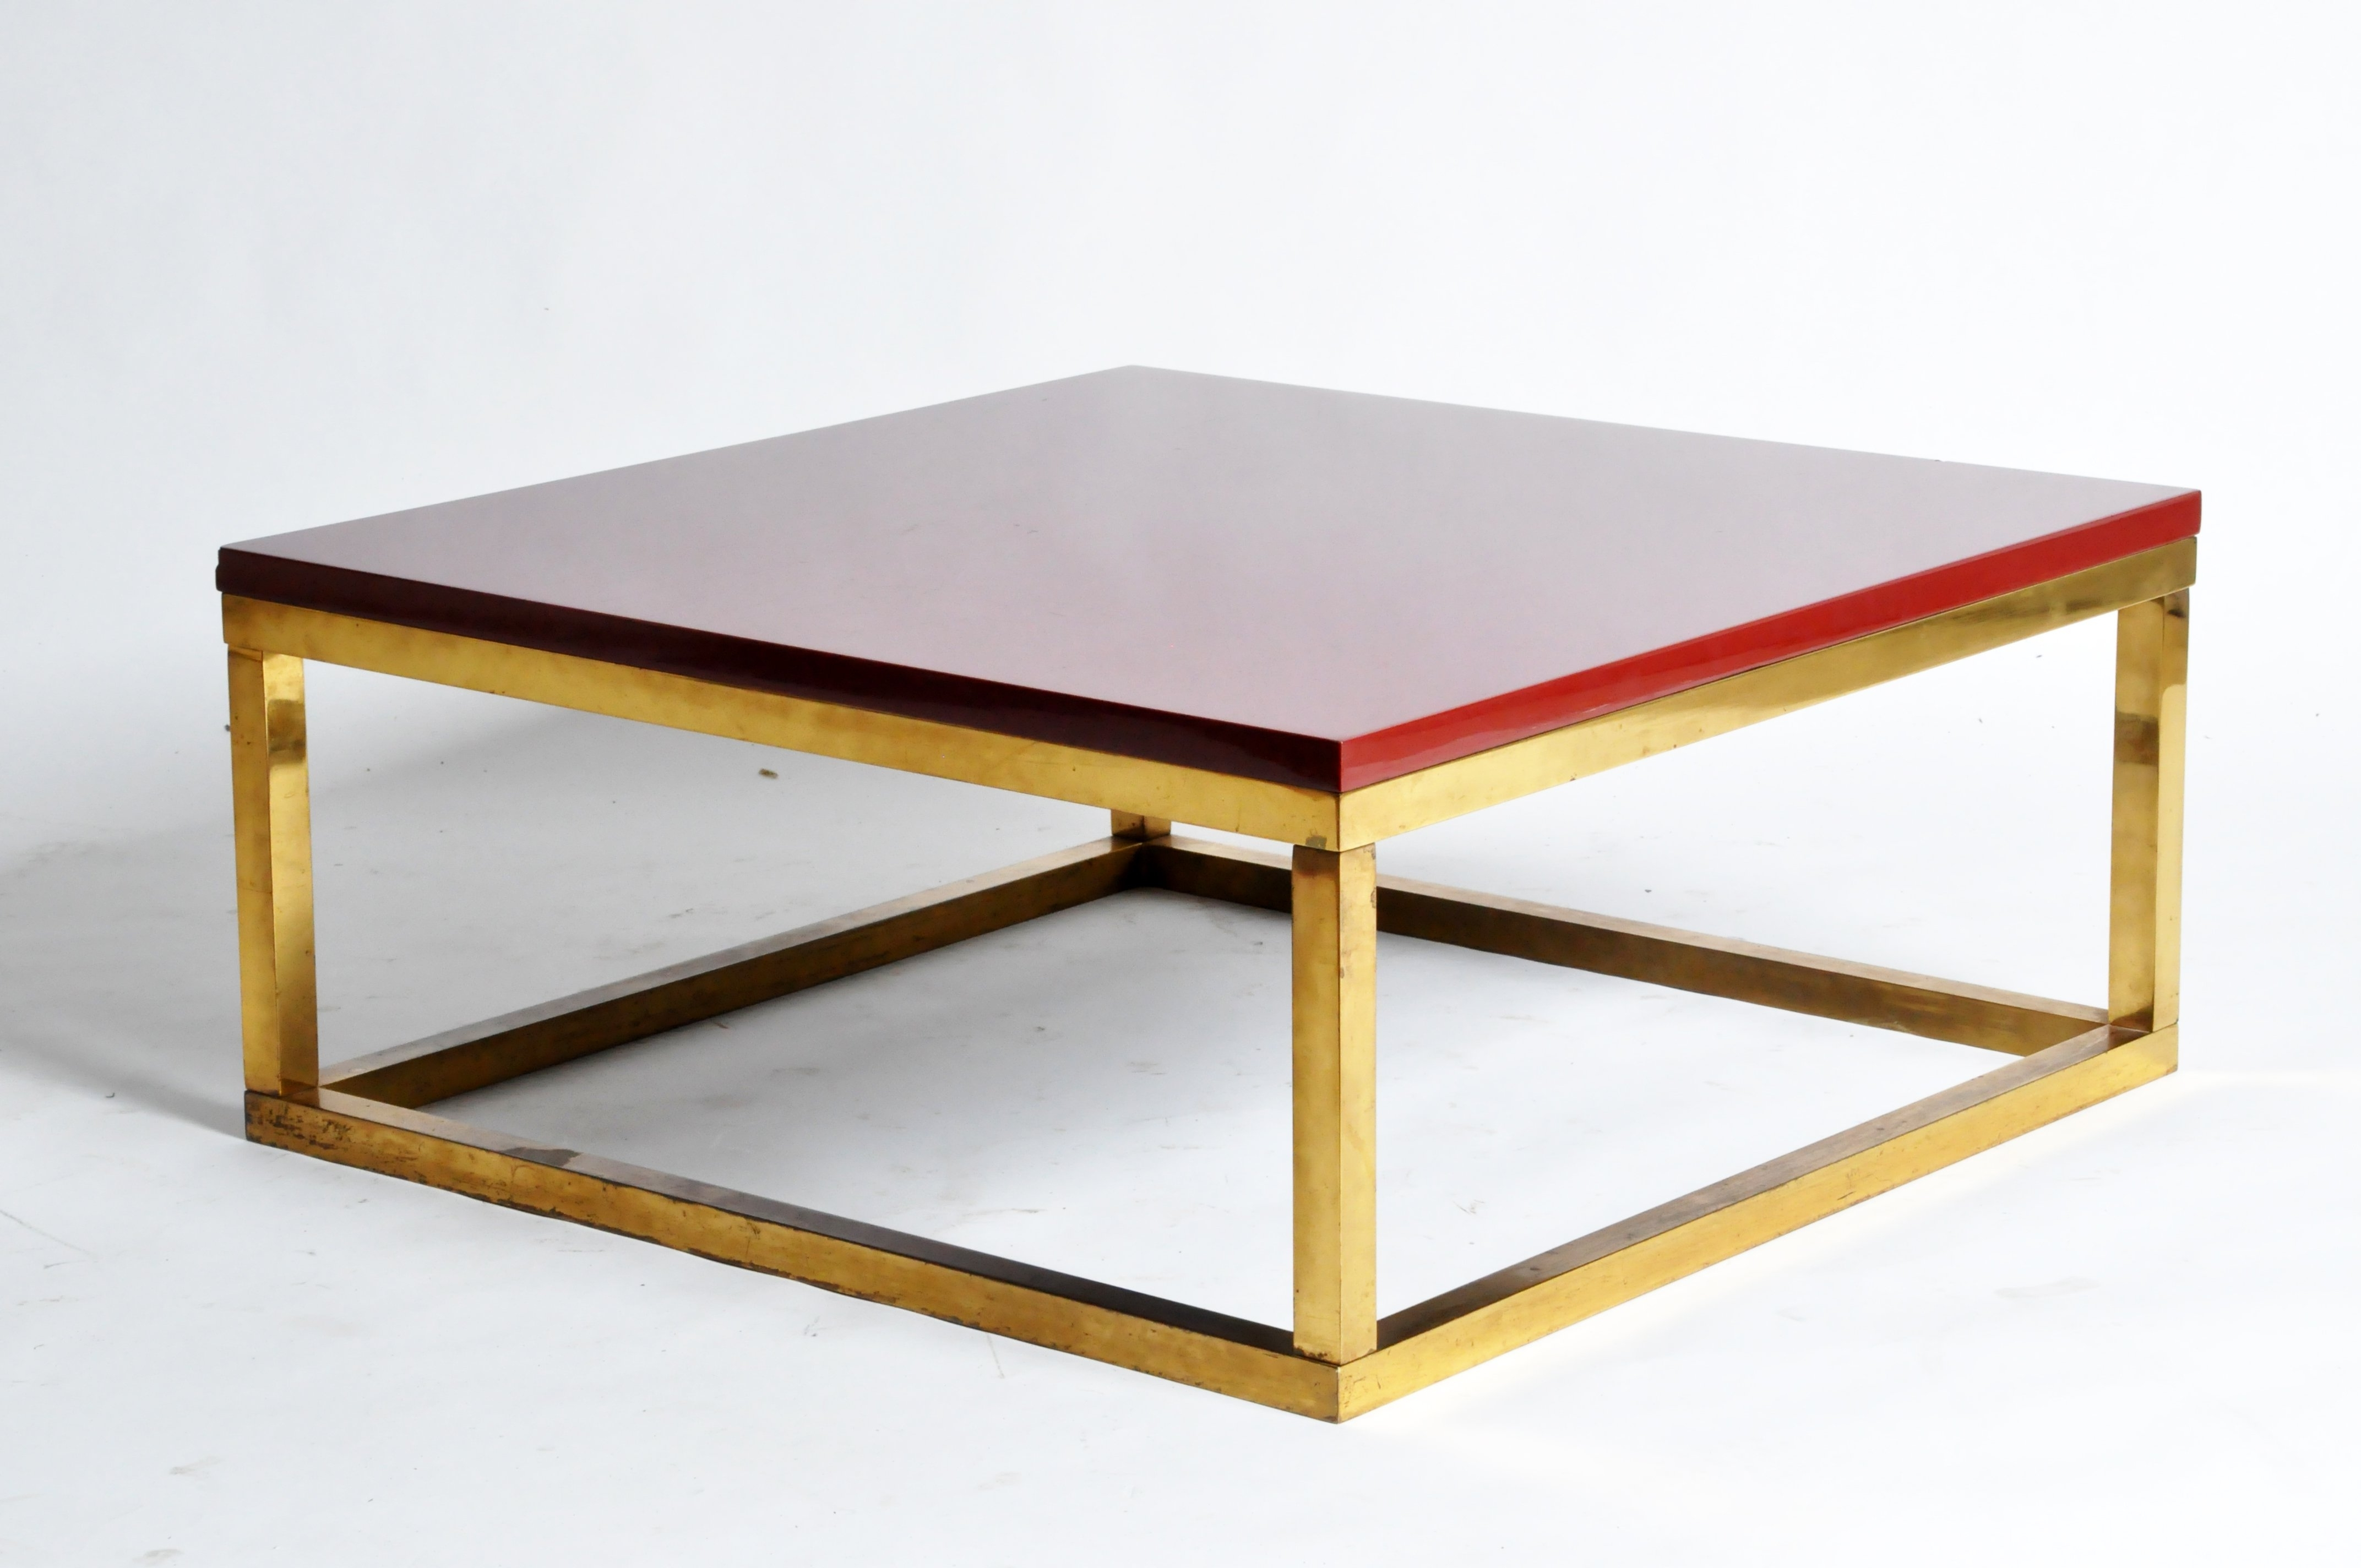 Preferred Brass Iron Cube Tables With Red Lacquer And Brass Cube Low Tables In The Style Of Kai (View 10 of 20)